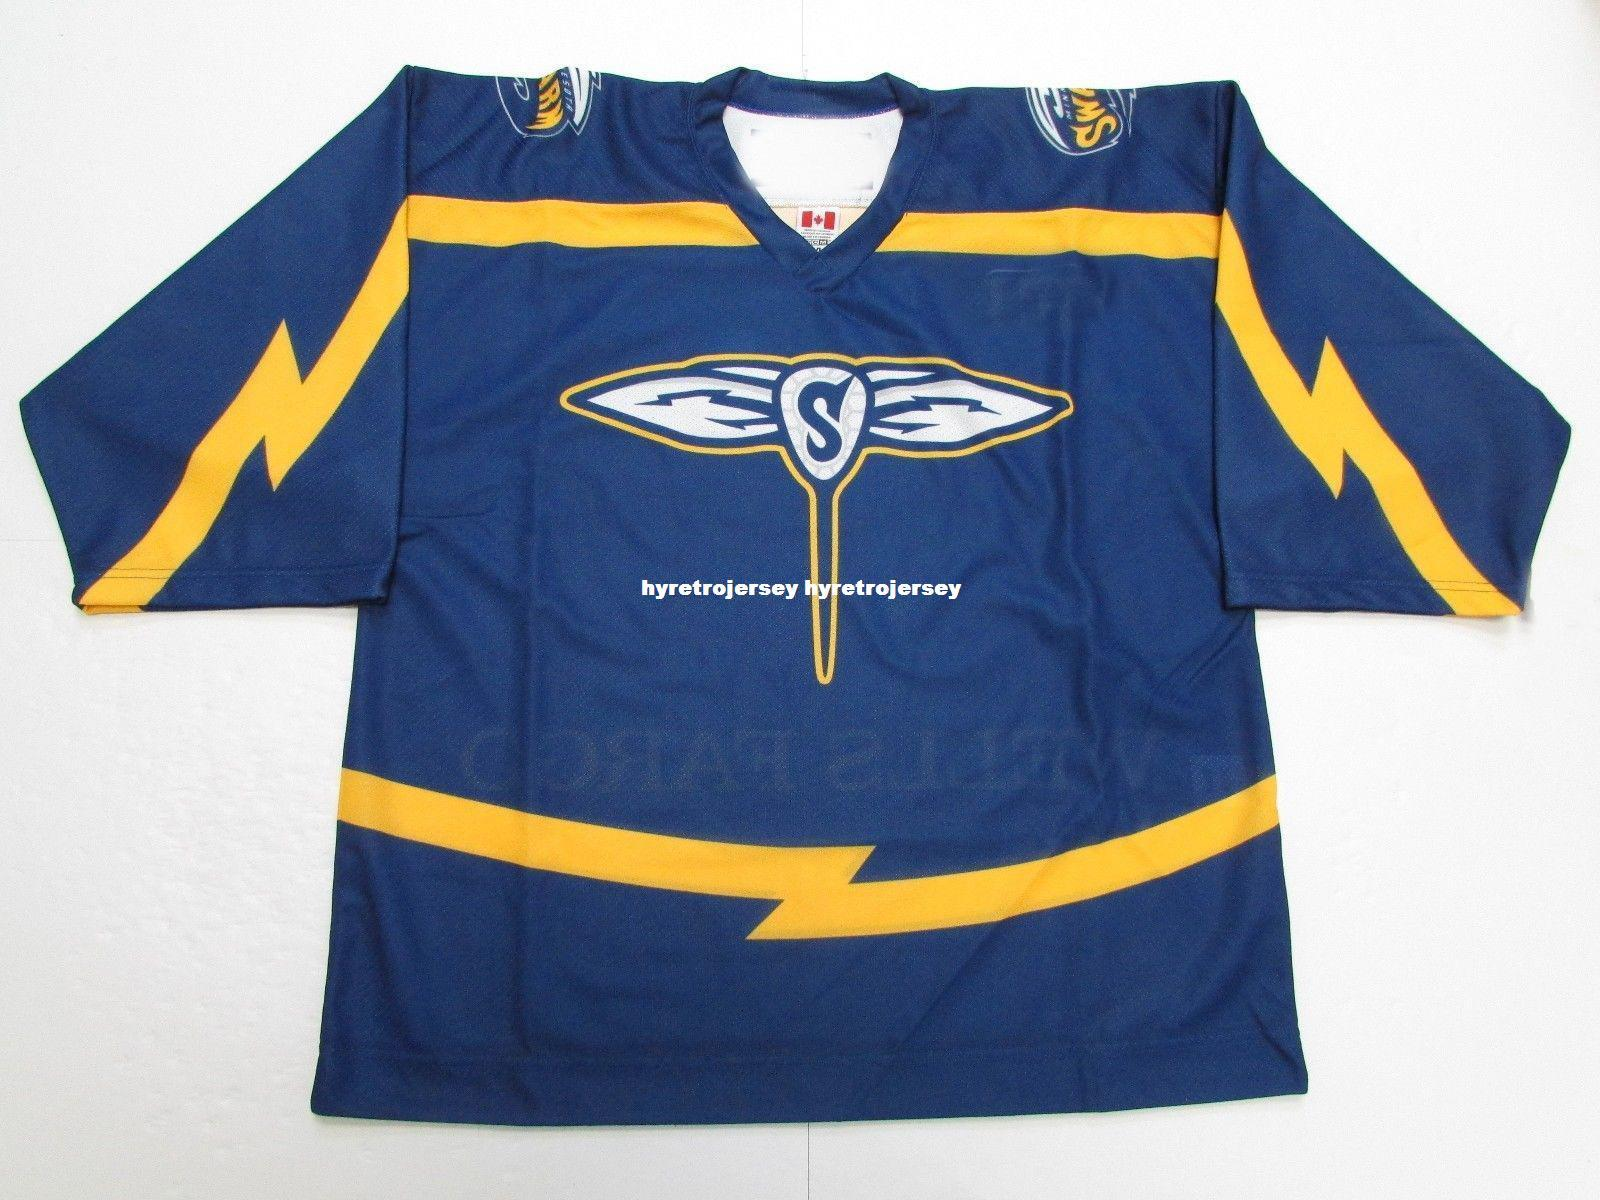 8b6ce7d9996 2019 Cheap Custom MINNESOTA SWARM NLL LACROSSE BLUE PRO JERSEY Stitch Add  Any Number Any Name Mens Hockey Jersey GOALIE CUT 5XL From Hyretrojersey